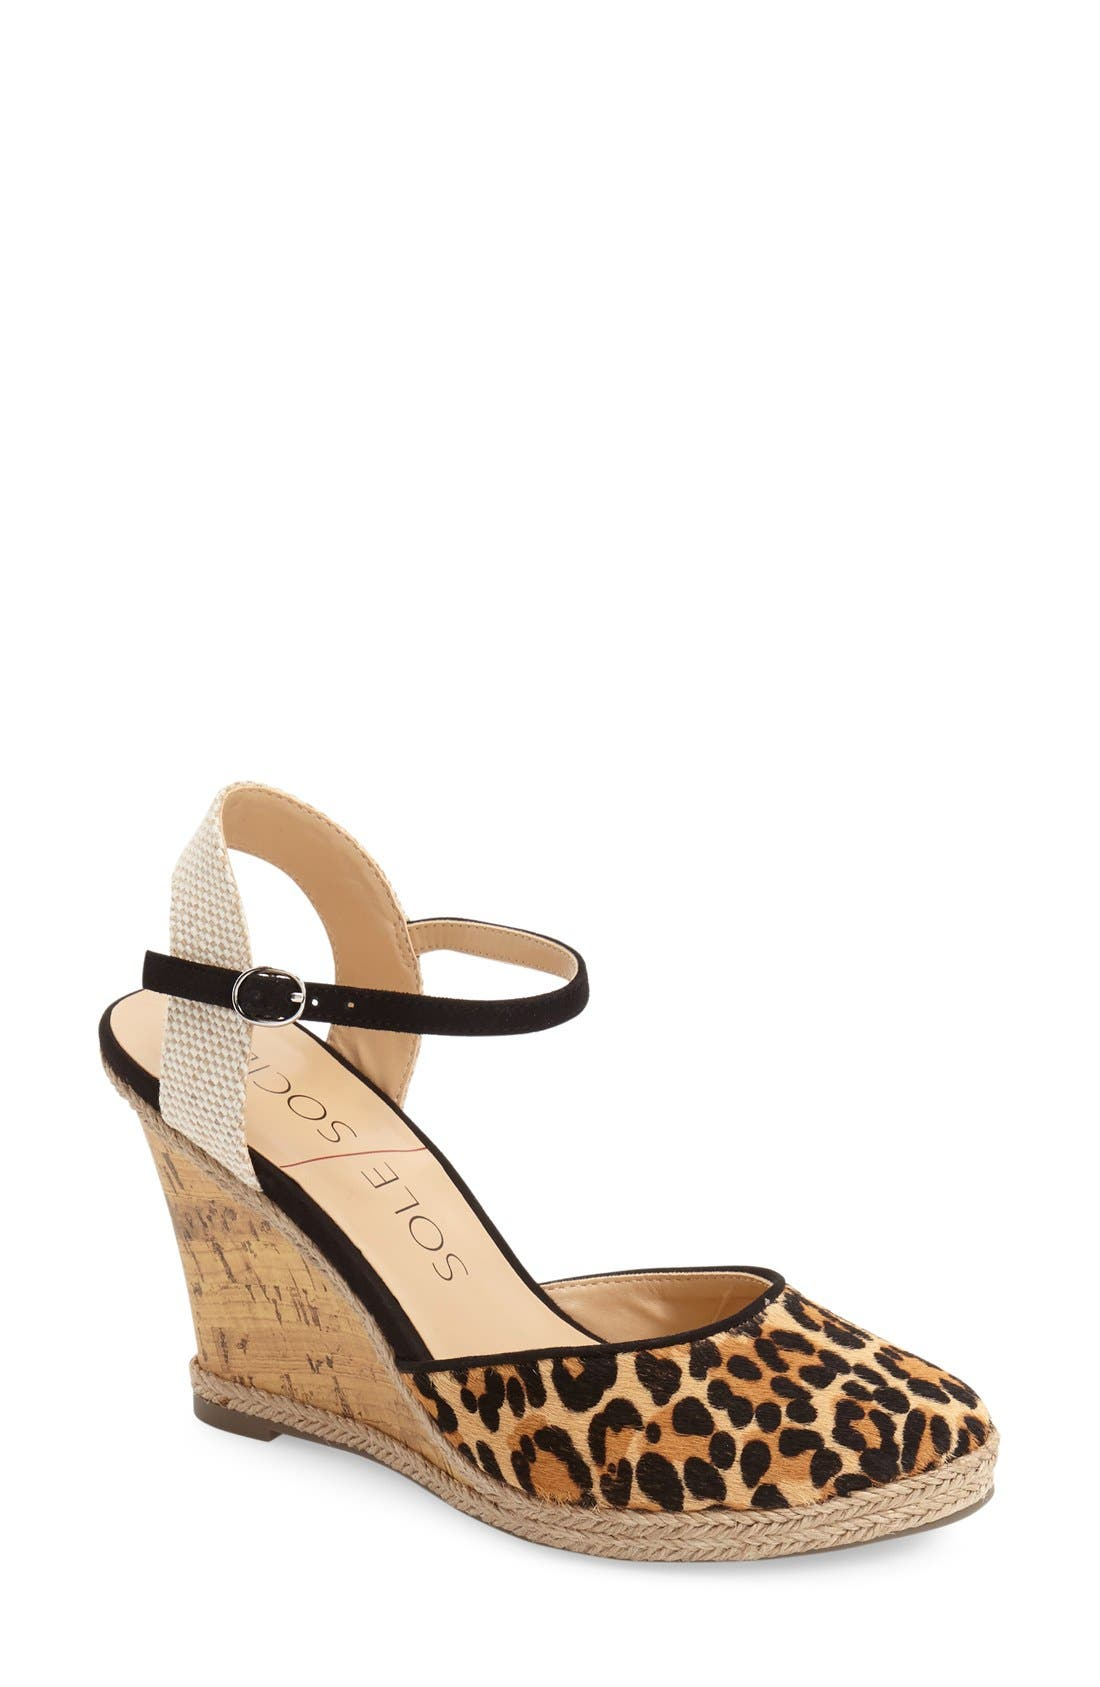 Main Image - Sole Society 'Lucy' Wedge Sandal (Women)